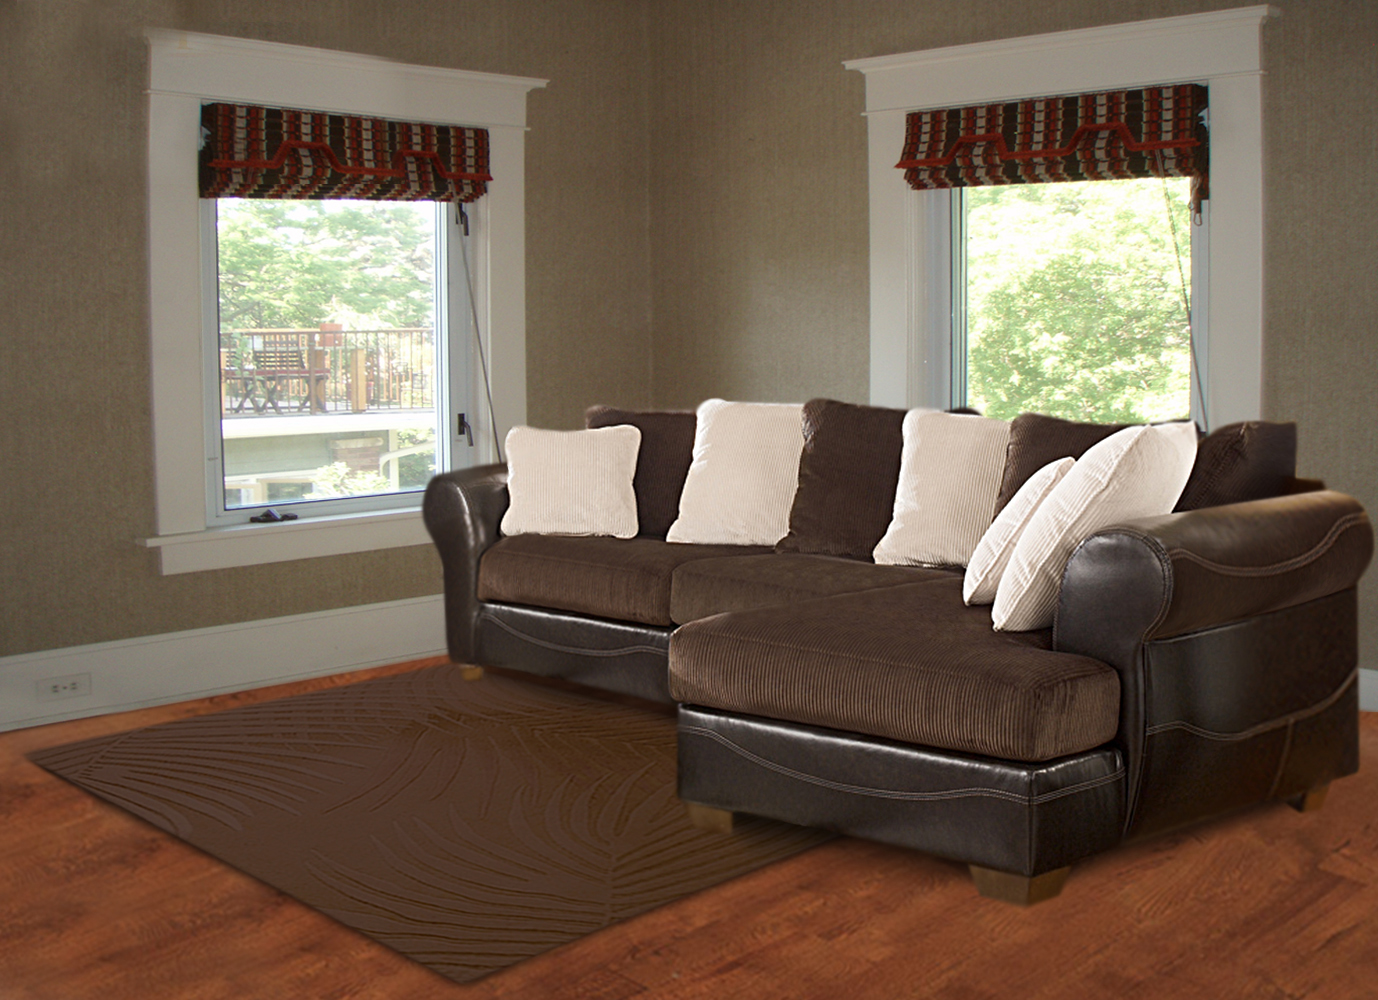 819-Sectional-Brown